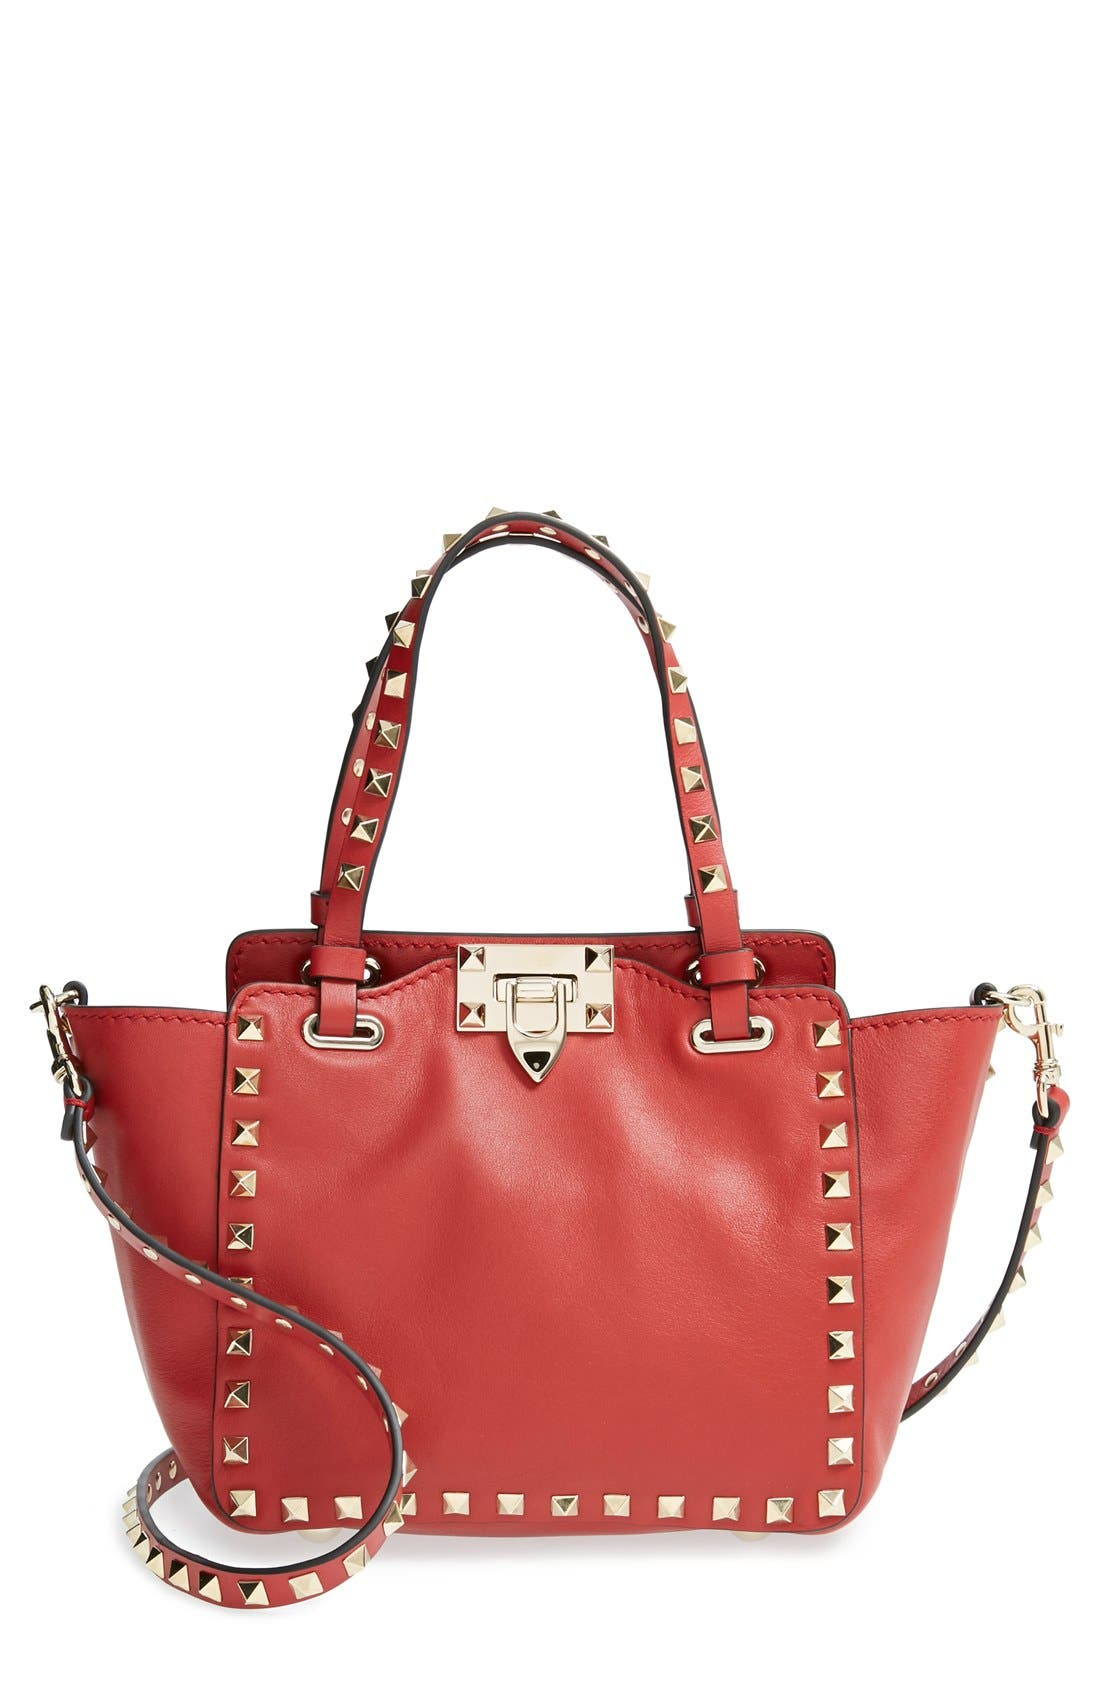 Main Image - Valentino 'Micro Mini Rockstud' Leather Tote